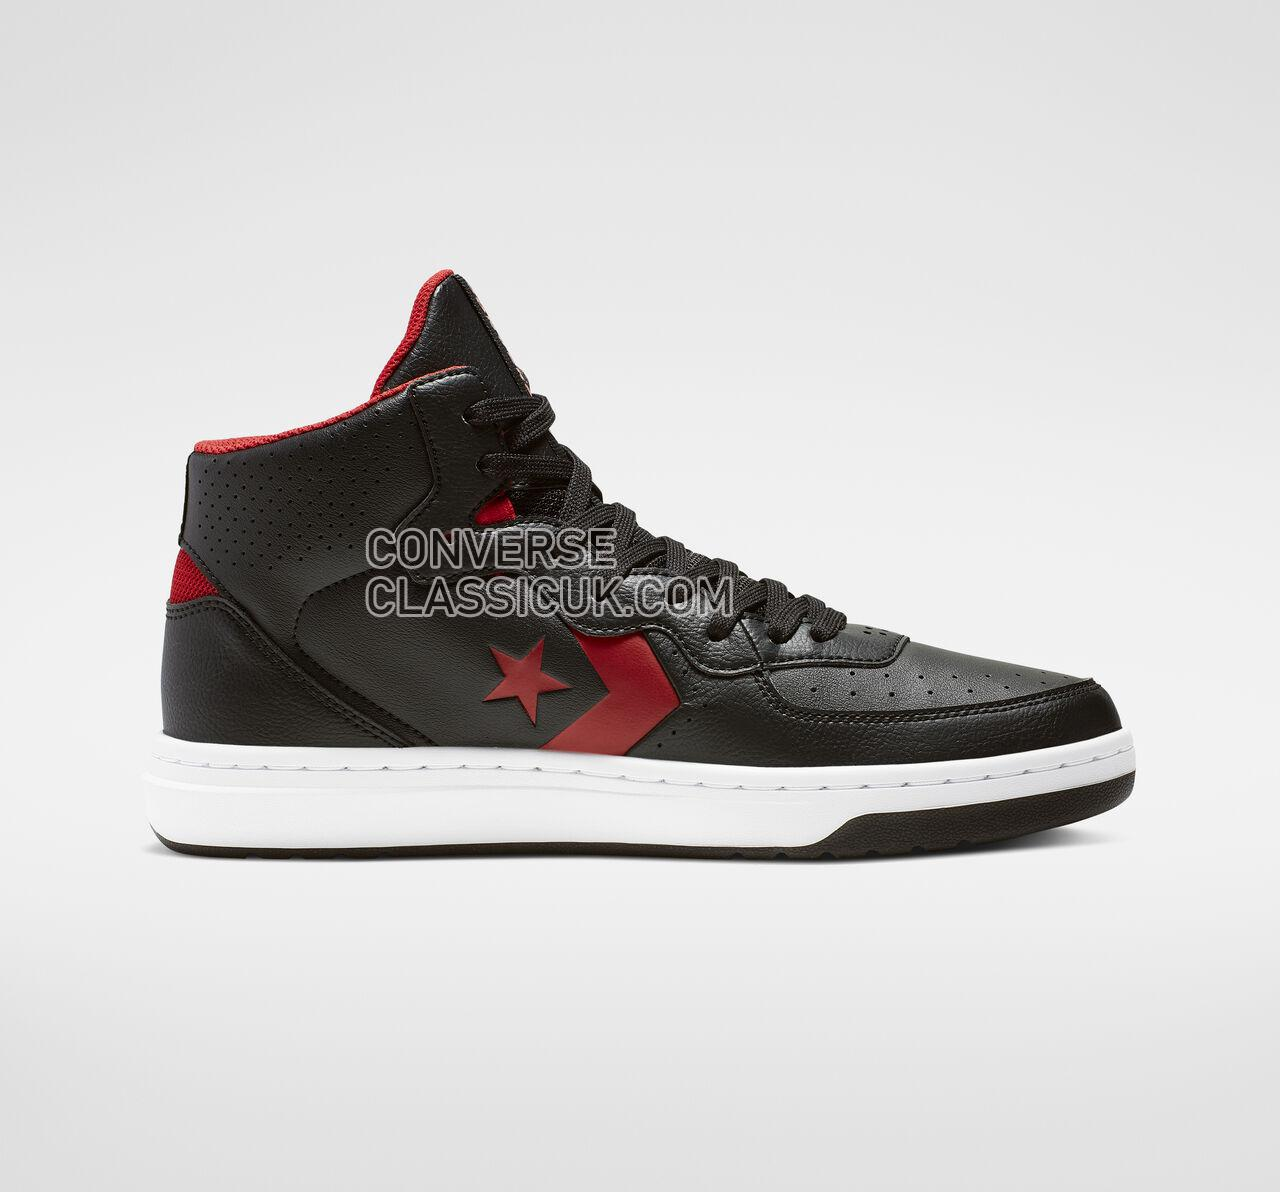 Converse Rival Mid Mens Womens Unisex 164889C Black/Enamel Red/White Shoes